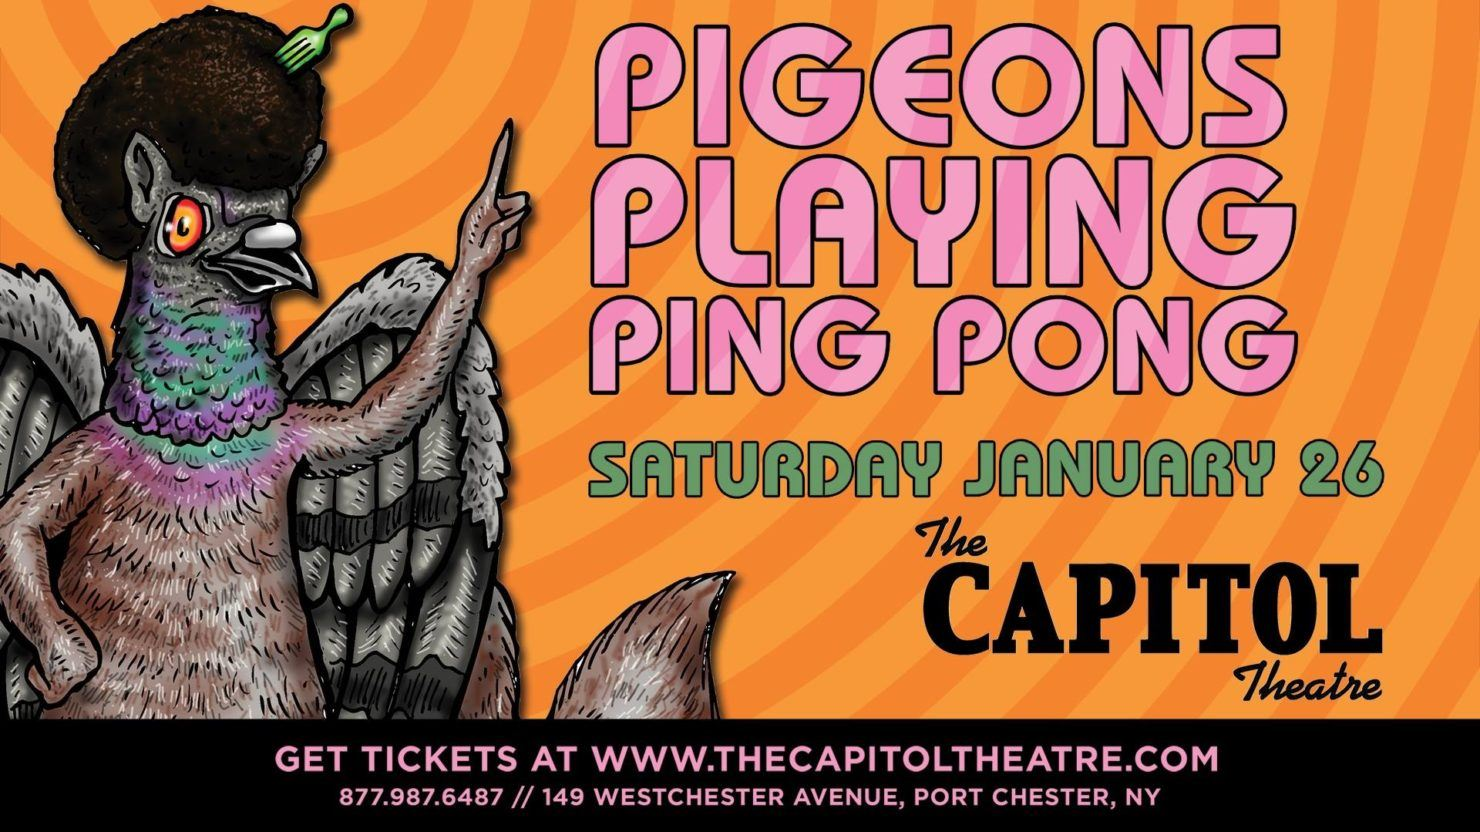 Pigeons Playing Ping Pong To Make The Capitol Theatre Debut